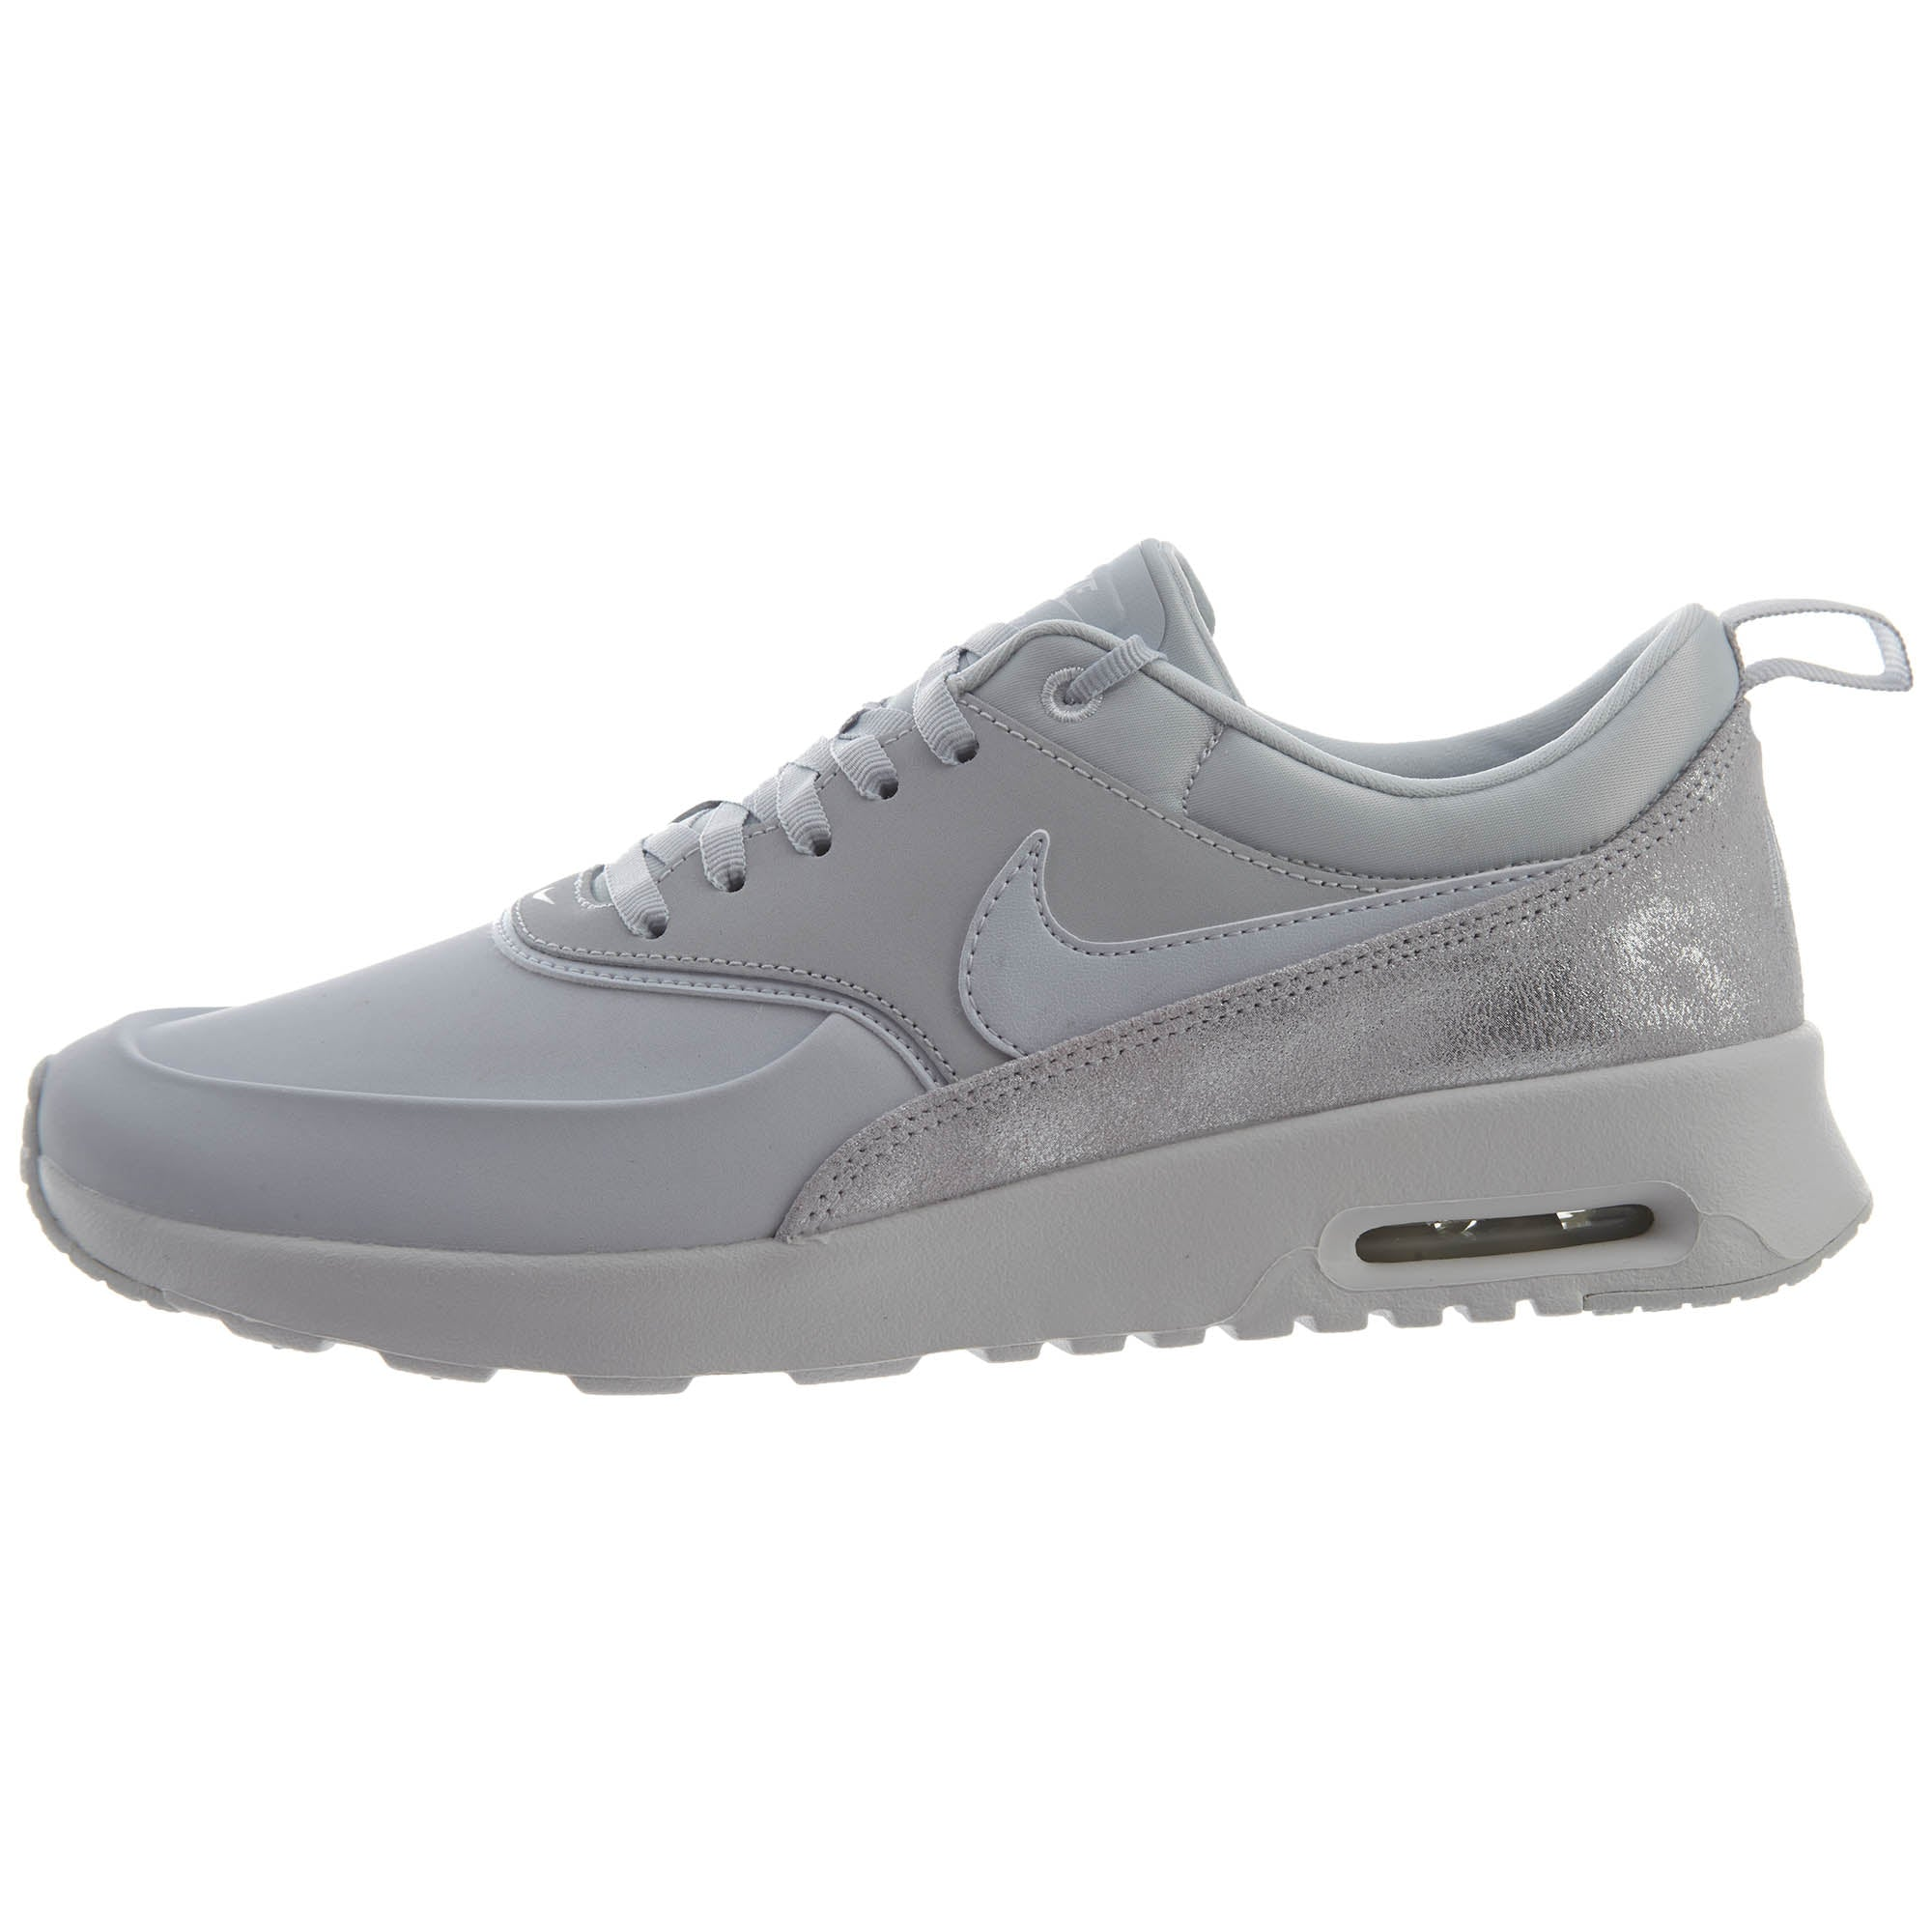 134a26c6190c0 Nike Air Max Thea Prm Womens Style   616723-026 – NY Tent Sale